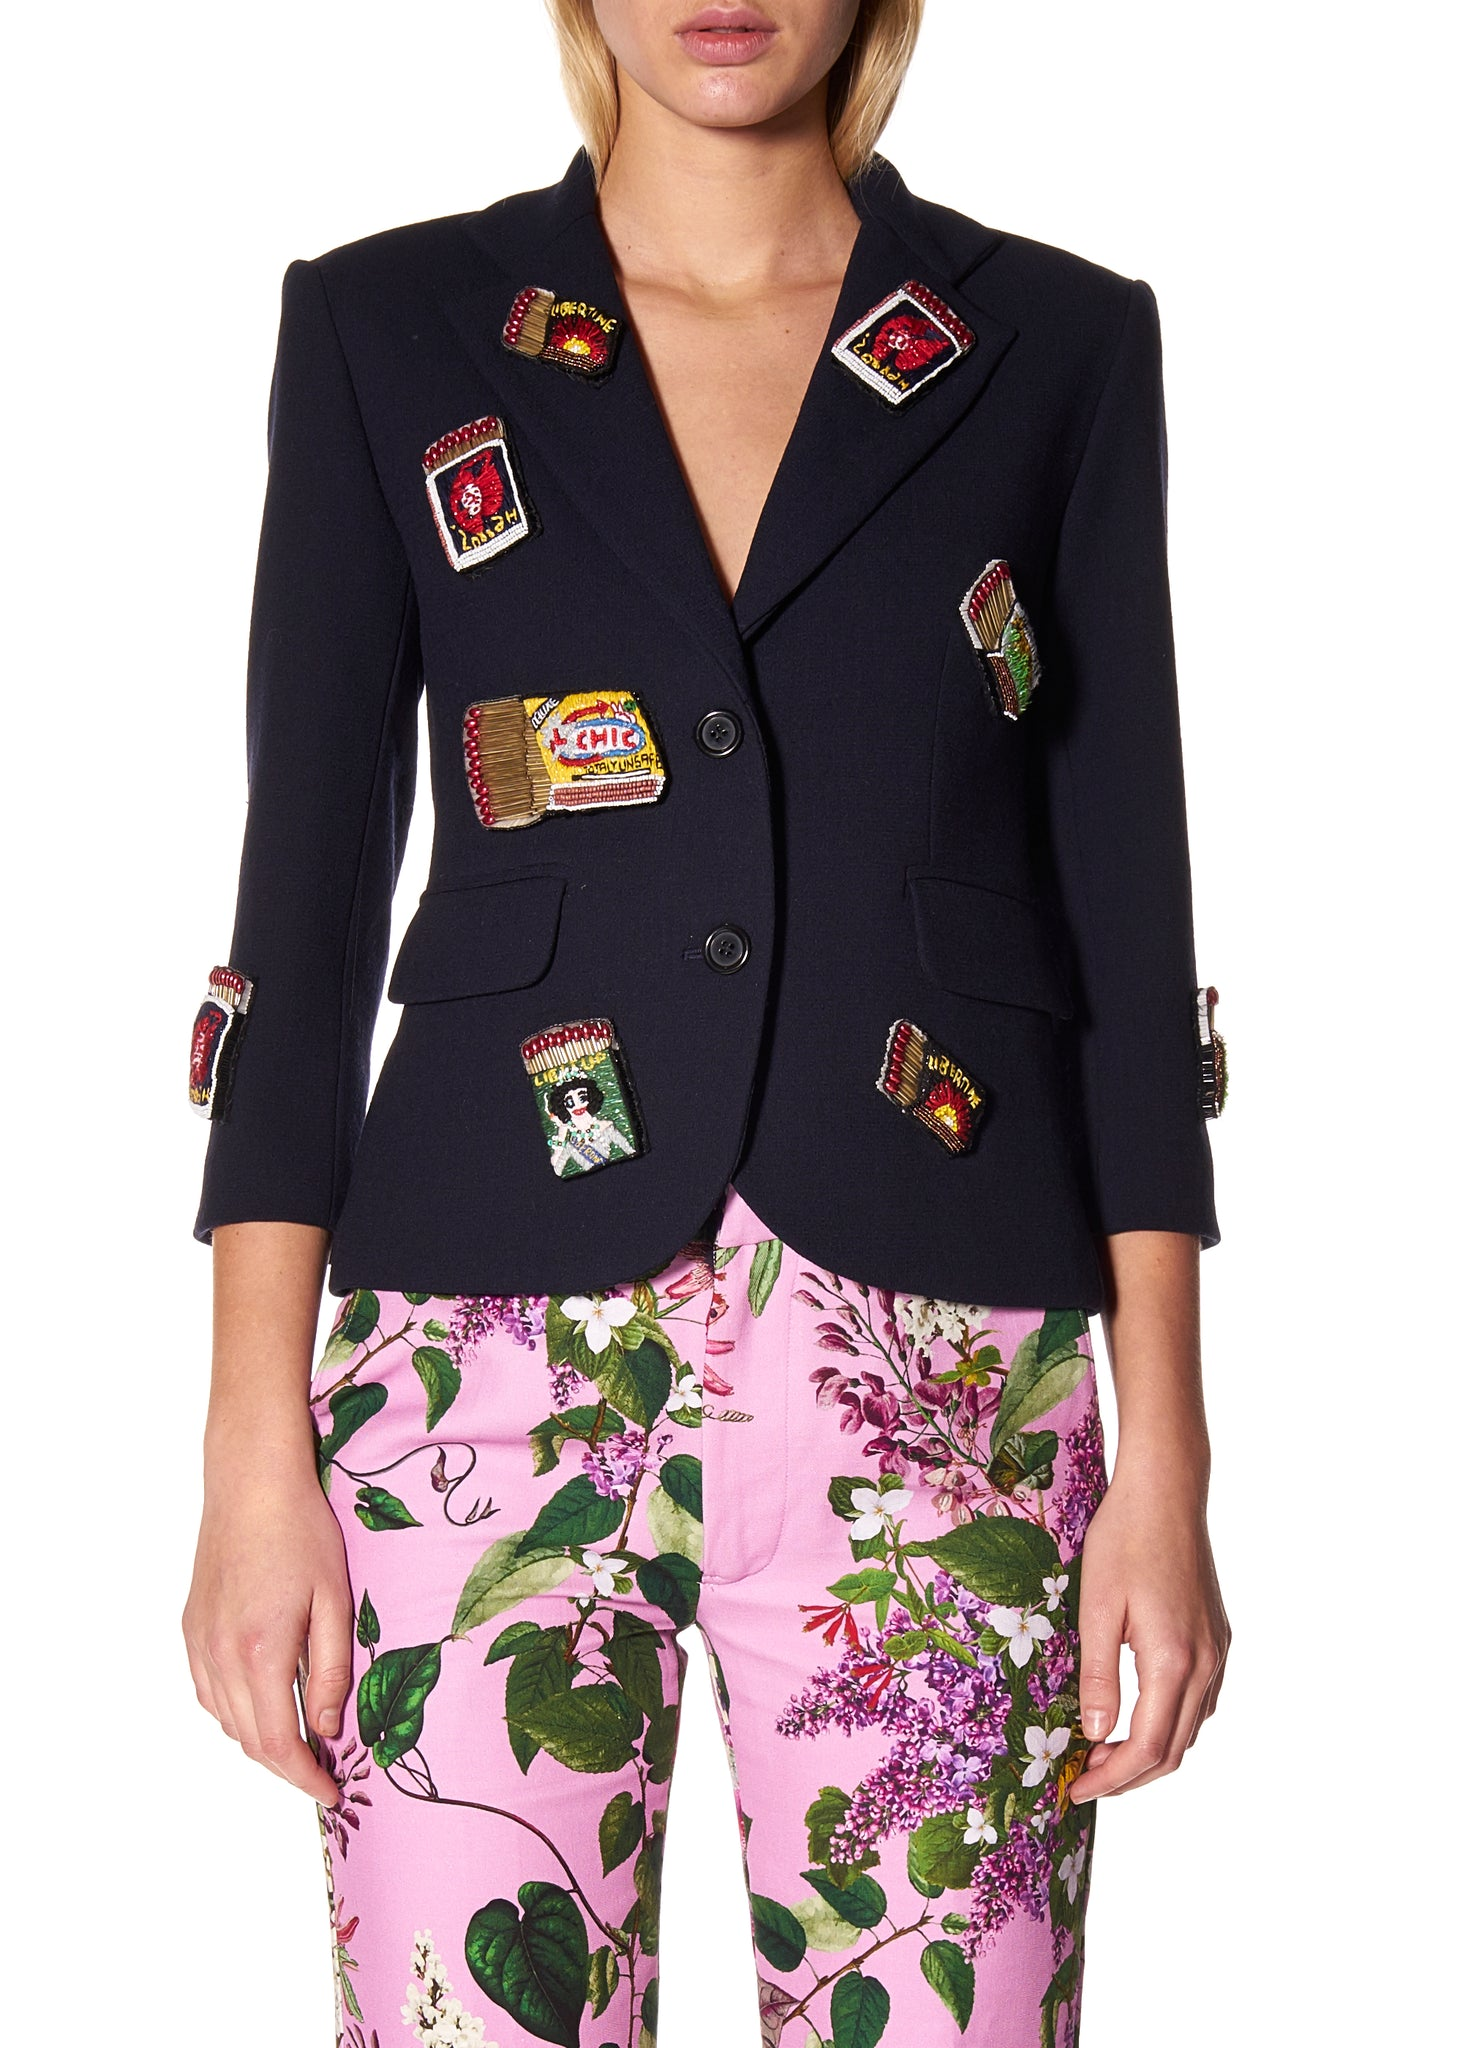 """MATCHBOOK MADNESS"" BLAZER - Women's Jackets & Coats - Libertine"